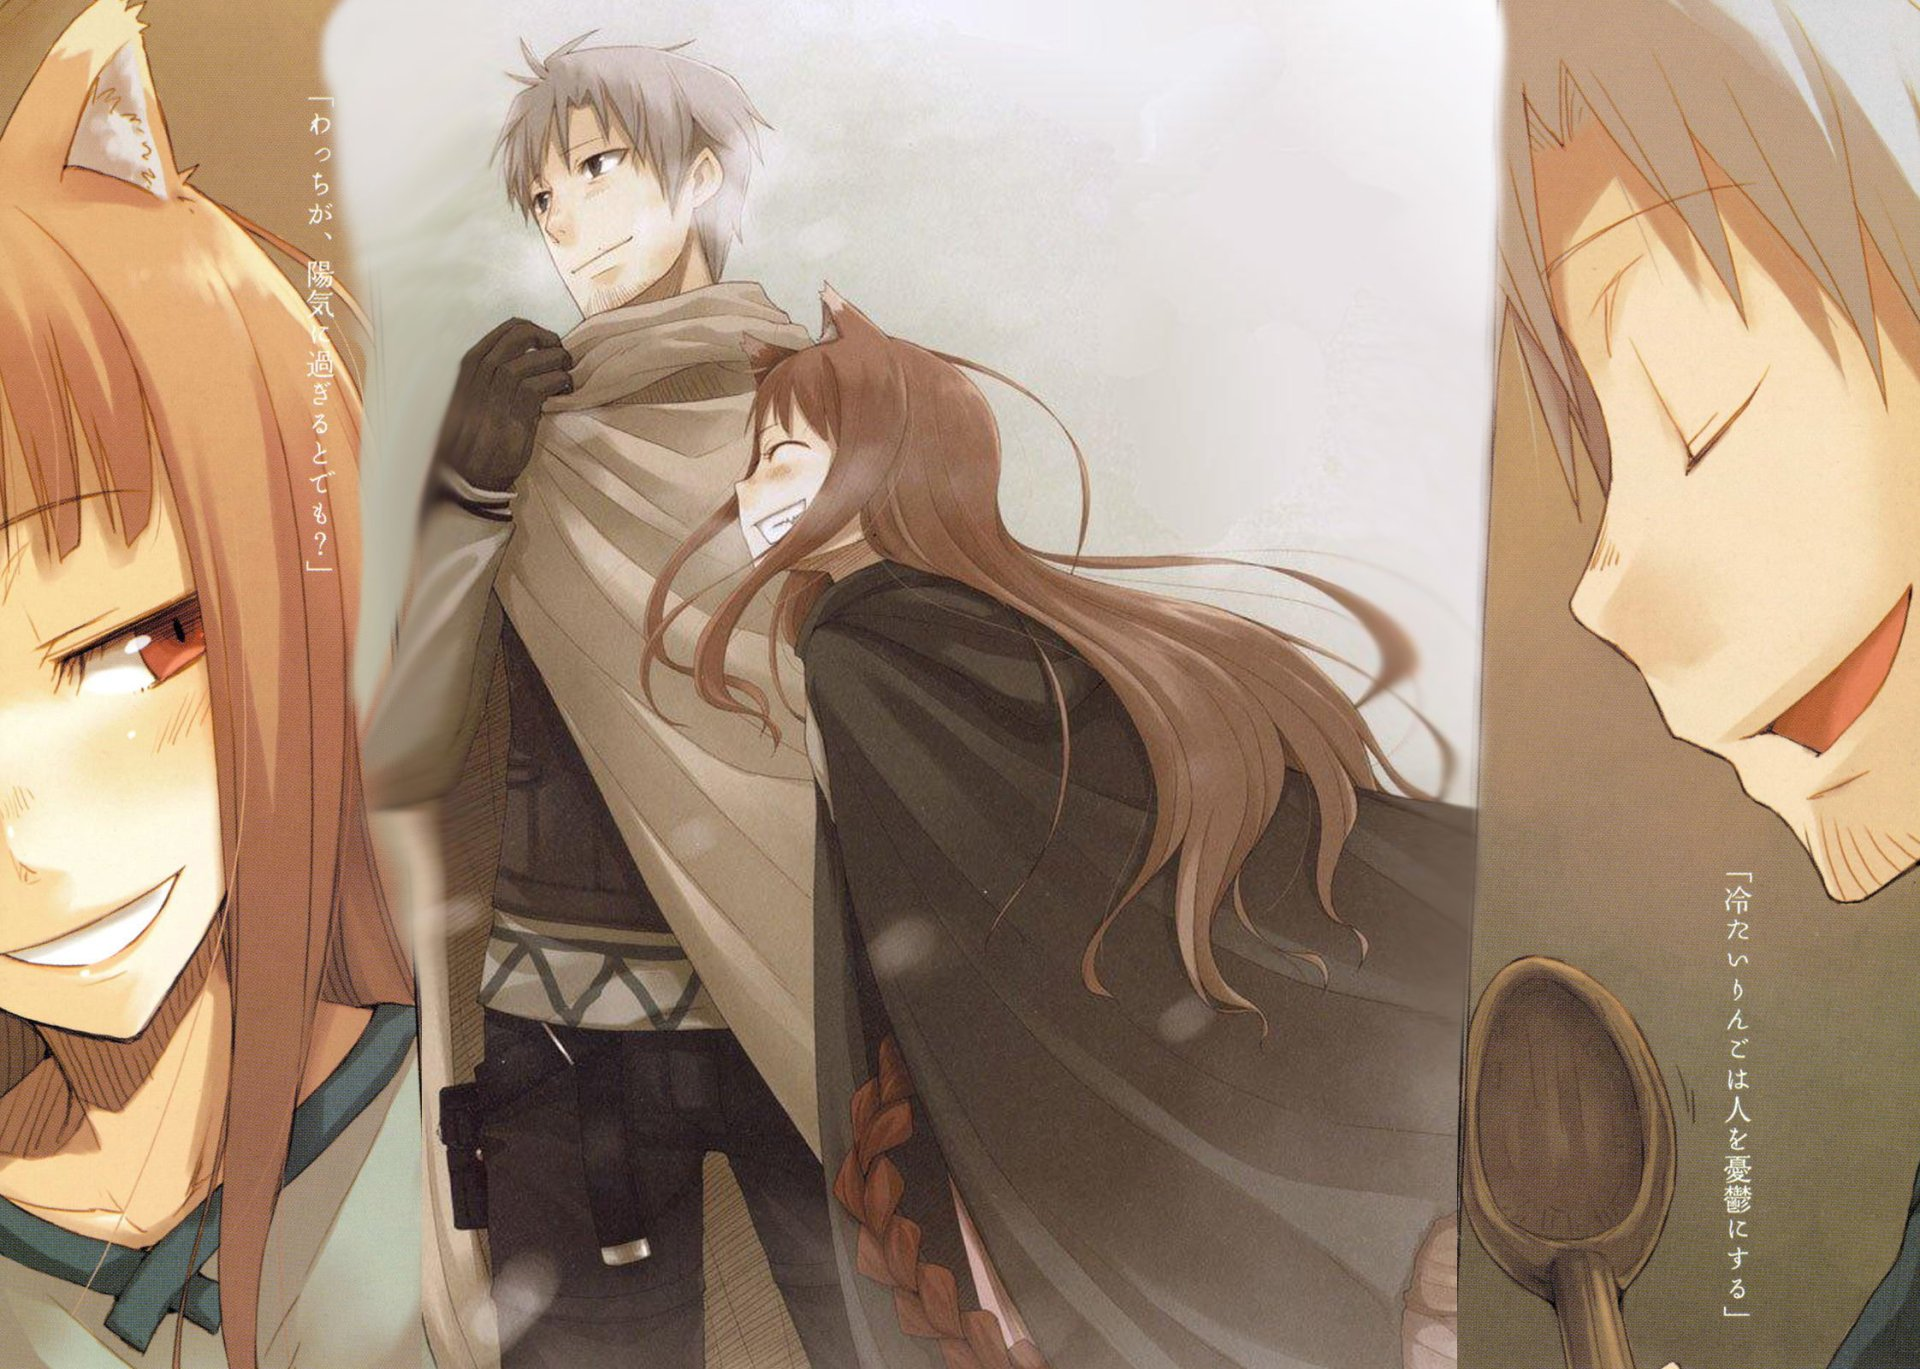 Anime - Spice and Wolf  Kraft Lawrence Holo (Spice & Wolf) Anime Kemonomimi Wallpaper